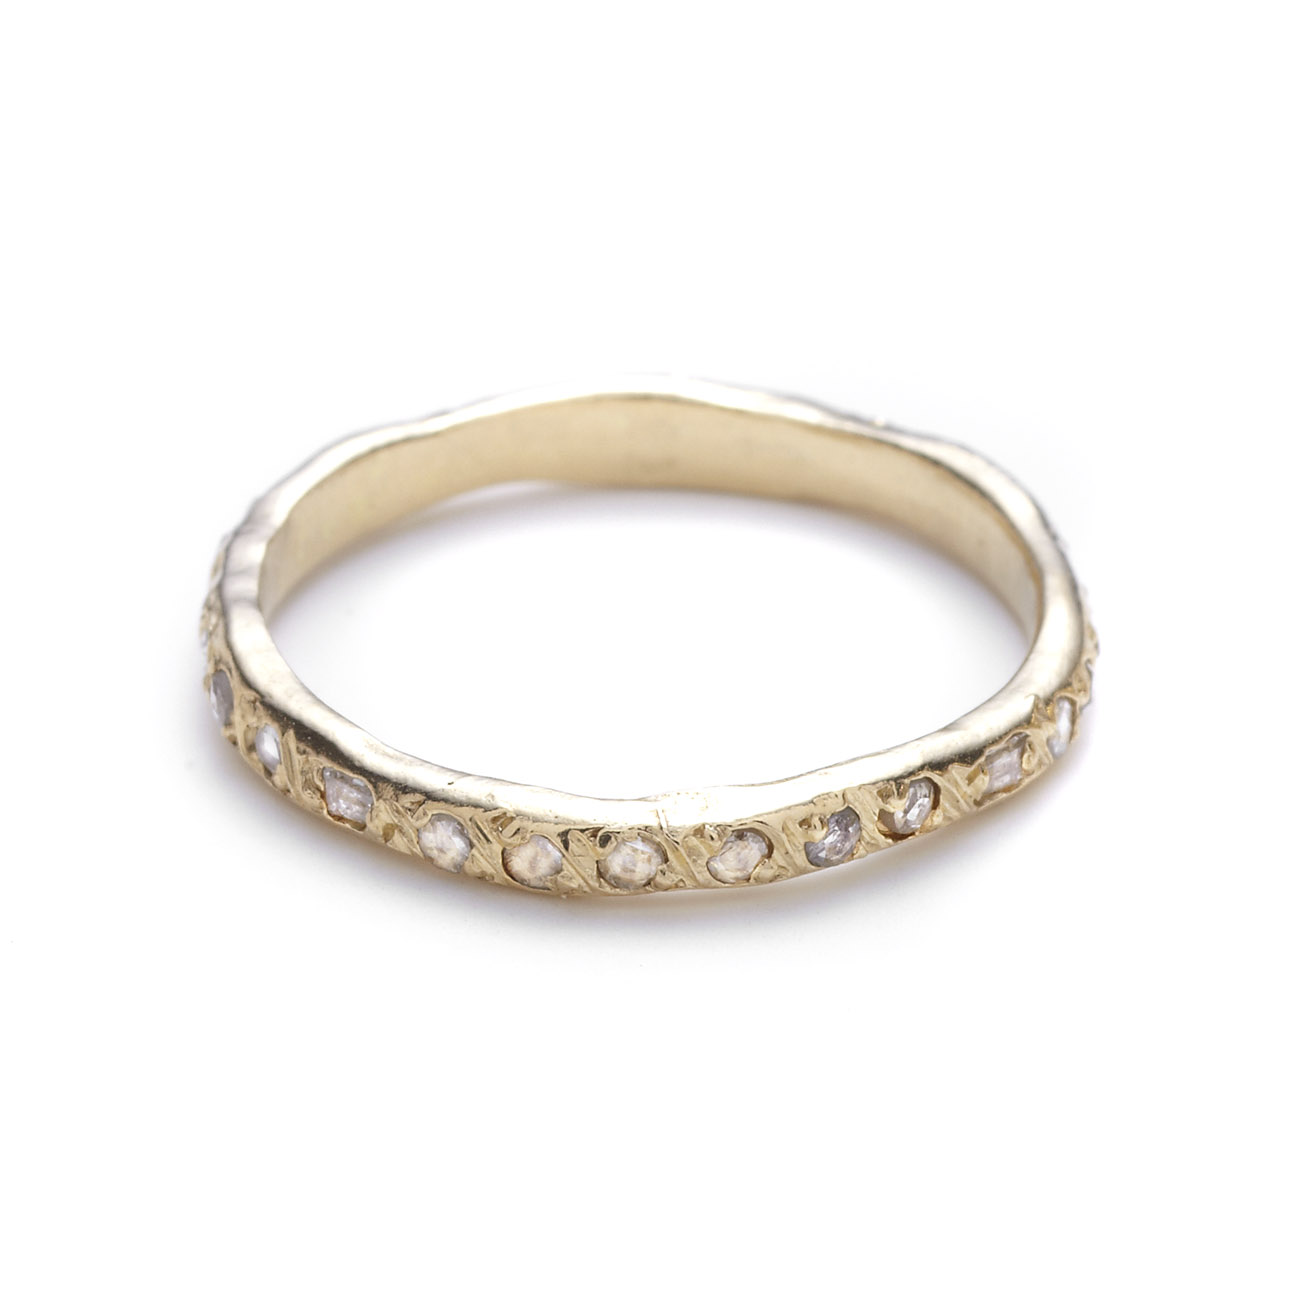 Shop 0.6 Carat Diamonds | Ritani